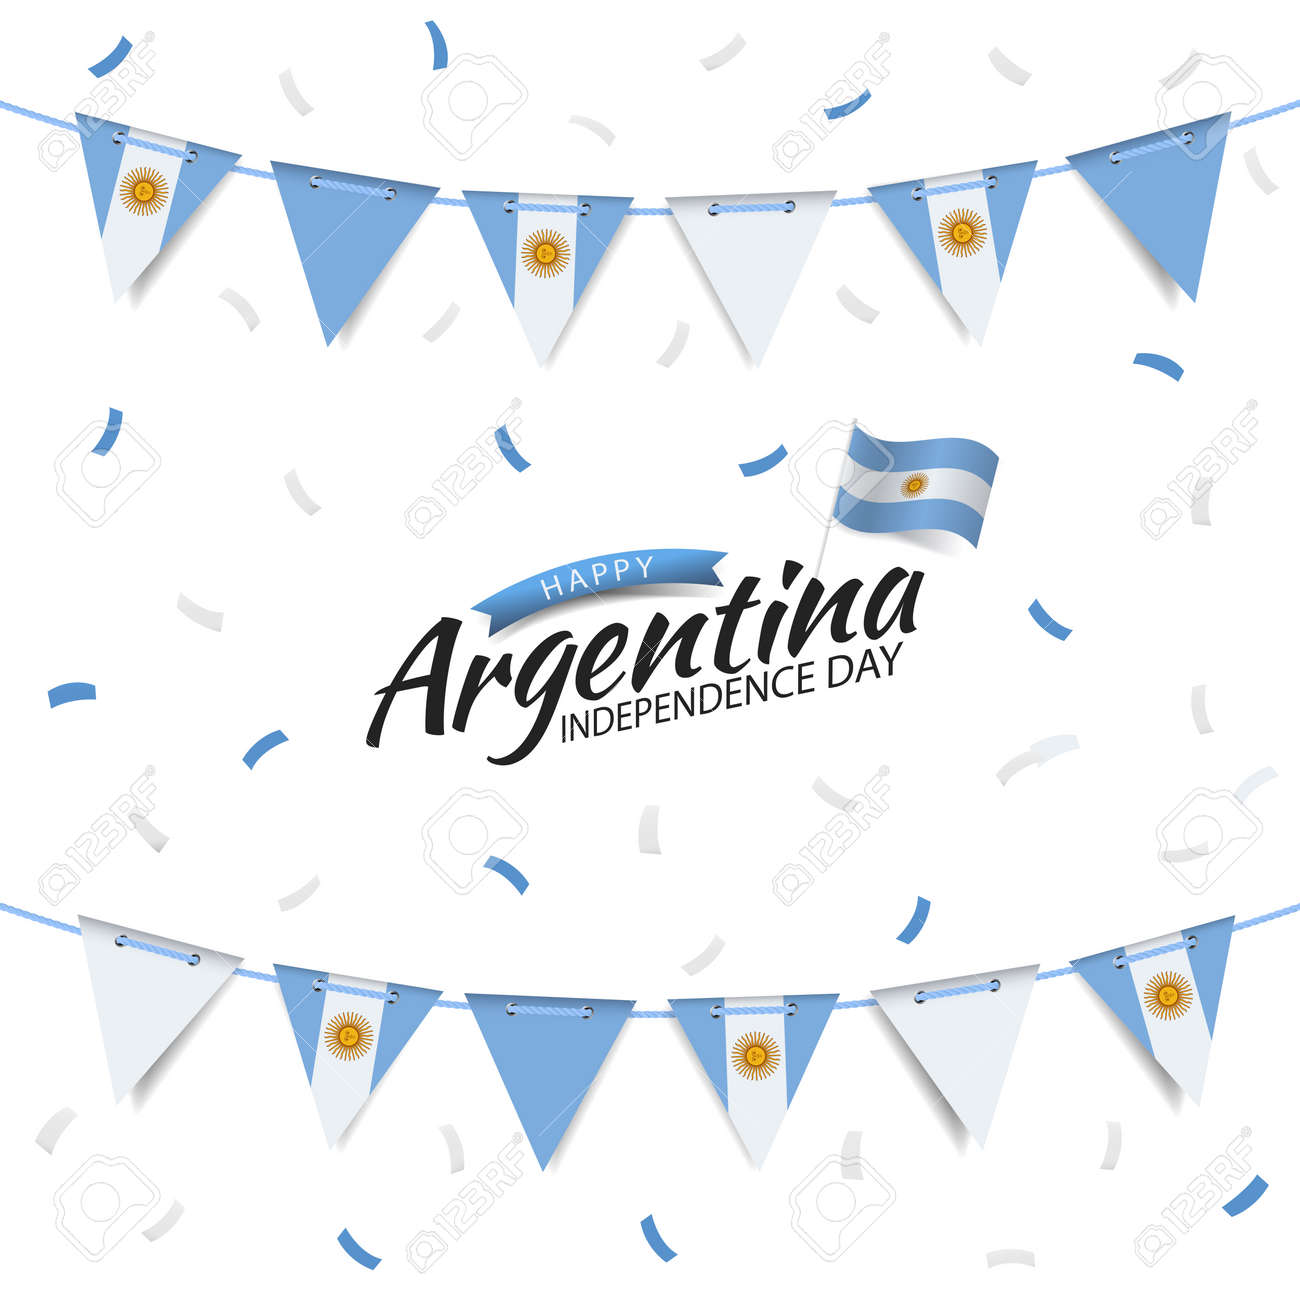 Vector Illustration of Independence Day of Argentina. Garland with the flag of Argentina on a white background. - 169318183